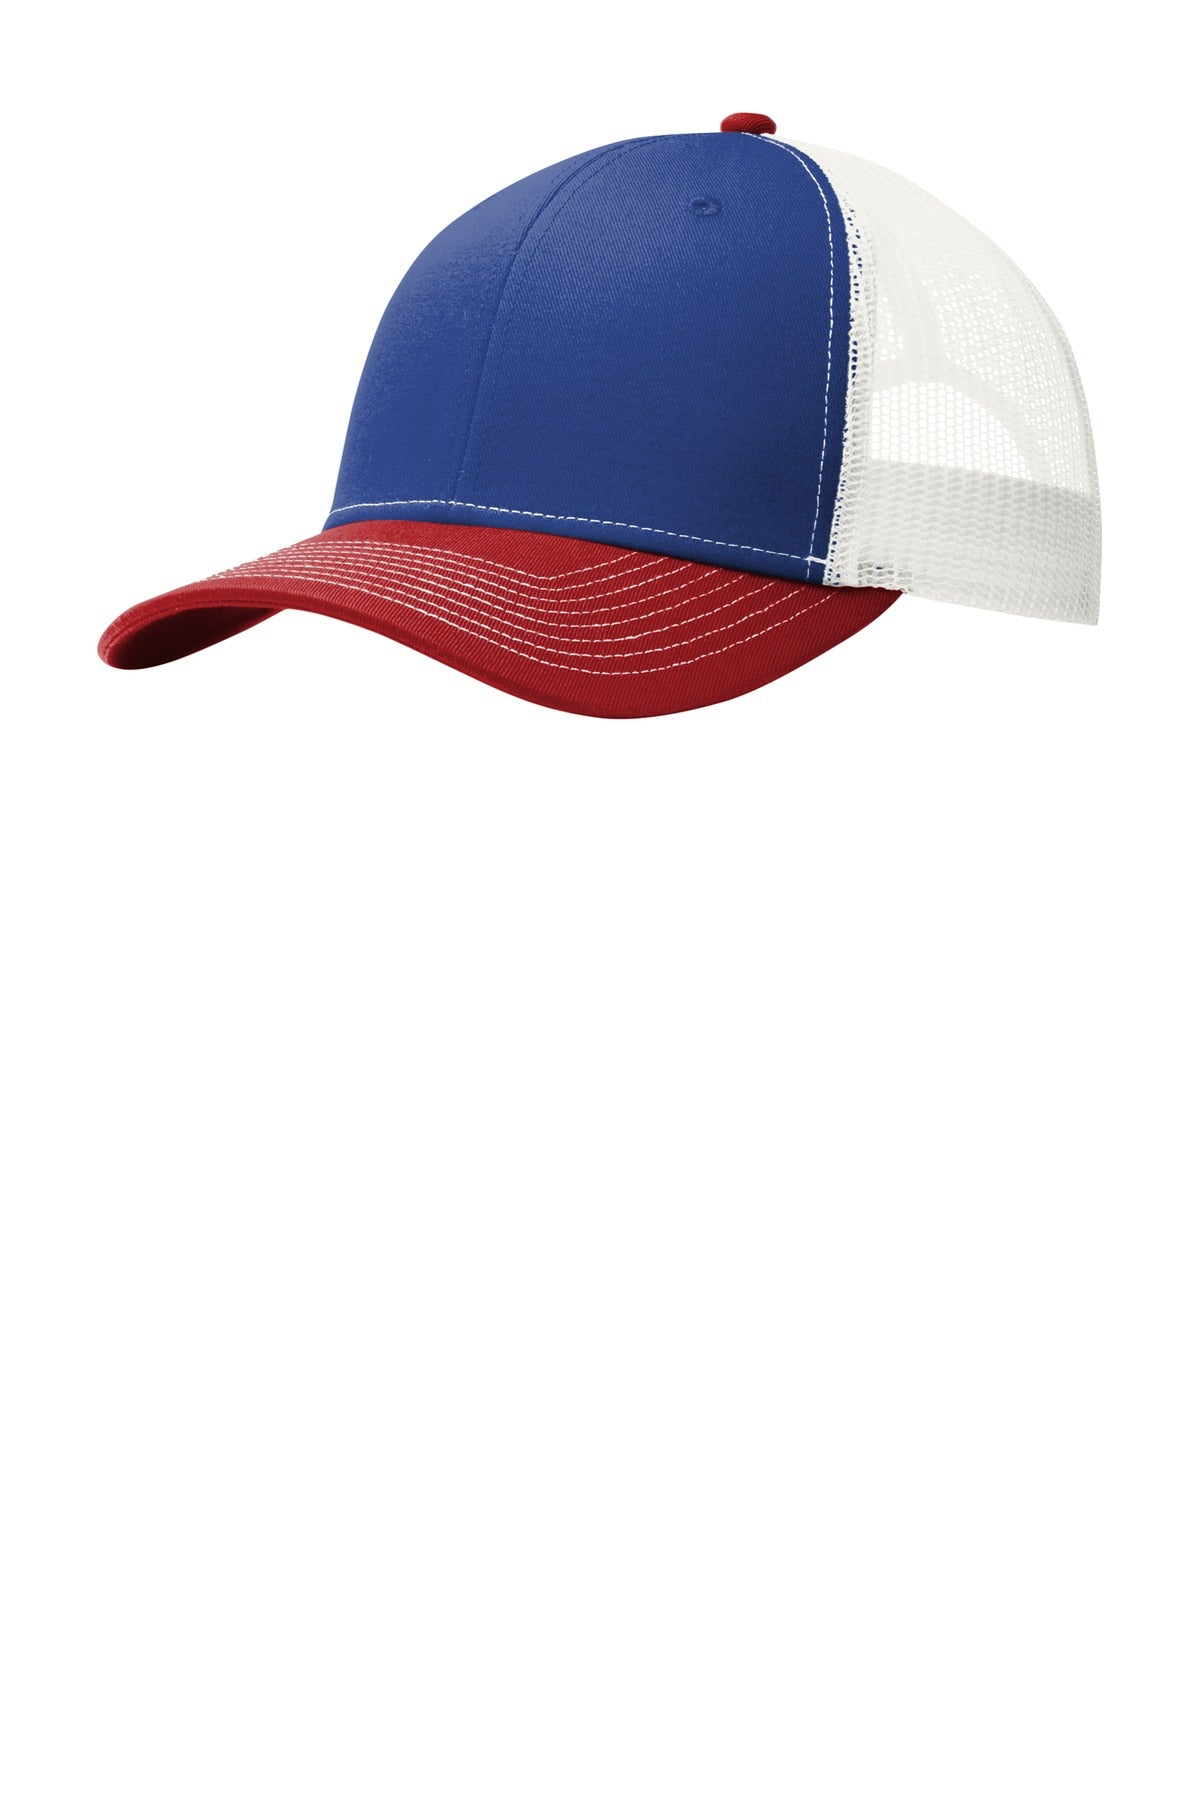 Patriot Blue / Flame Red / White Port Authority Snapback Trucker Cap